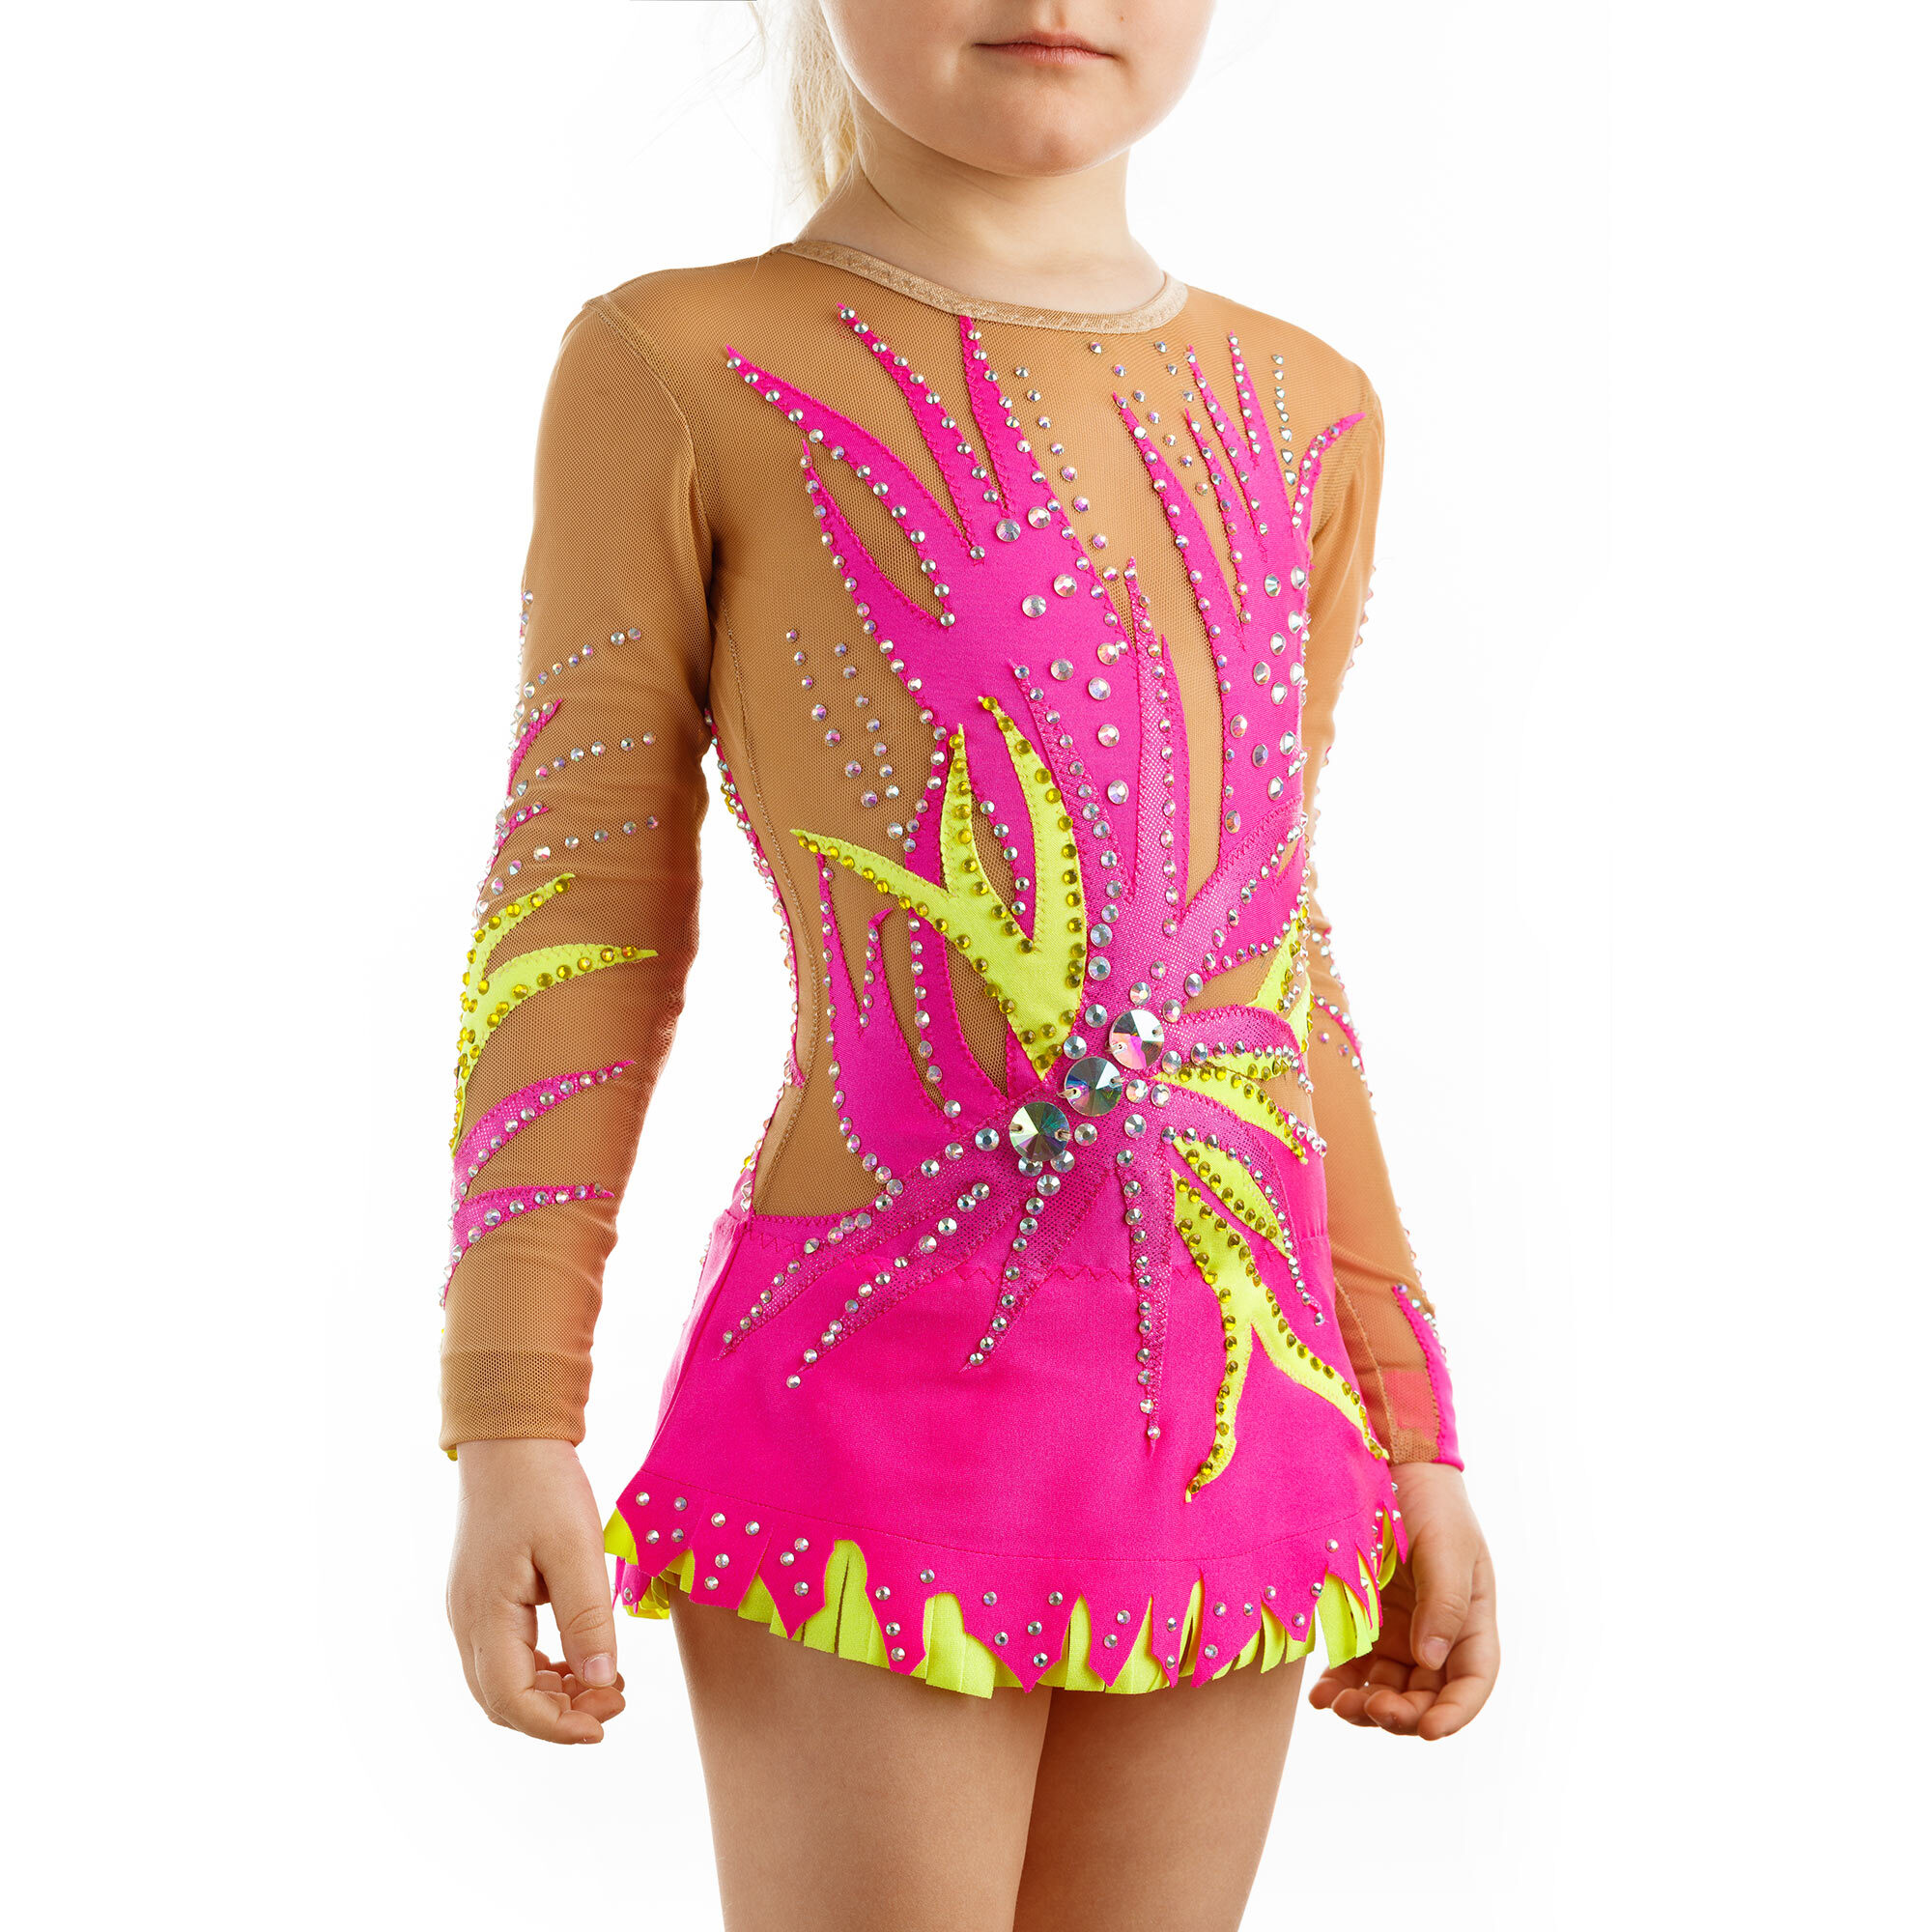 Rhythmic Gymnastics Leotard 197 made in Magenta, lemon & mesh colors with basic or Swarovski crystals